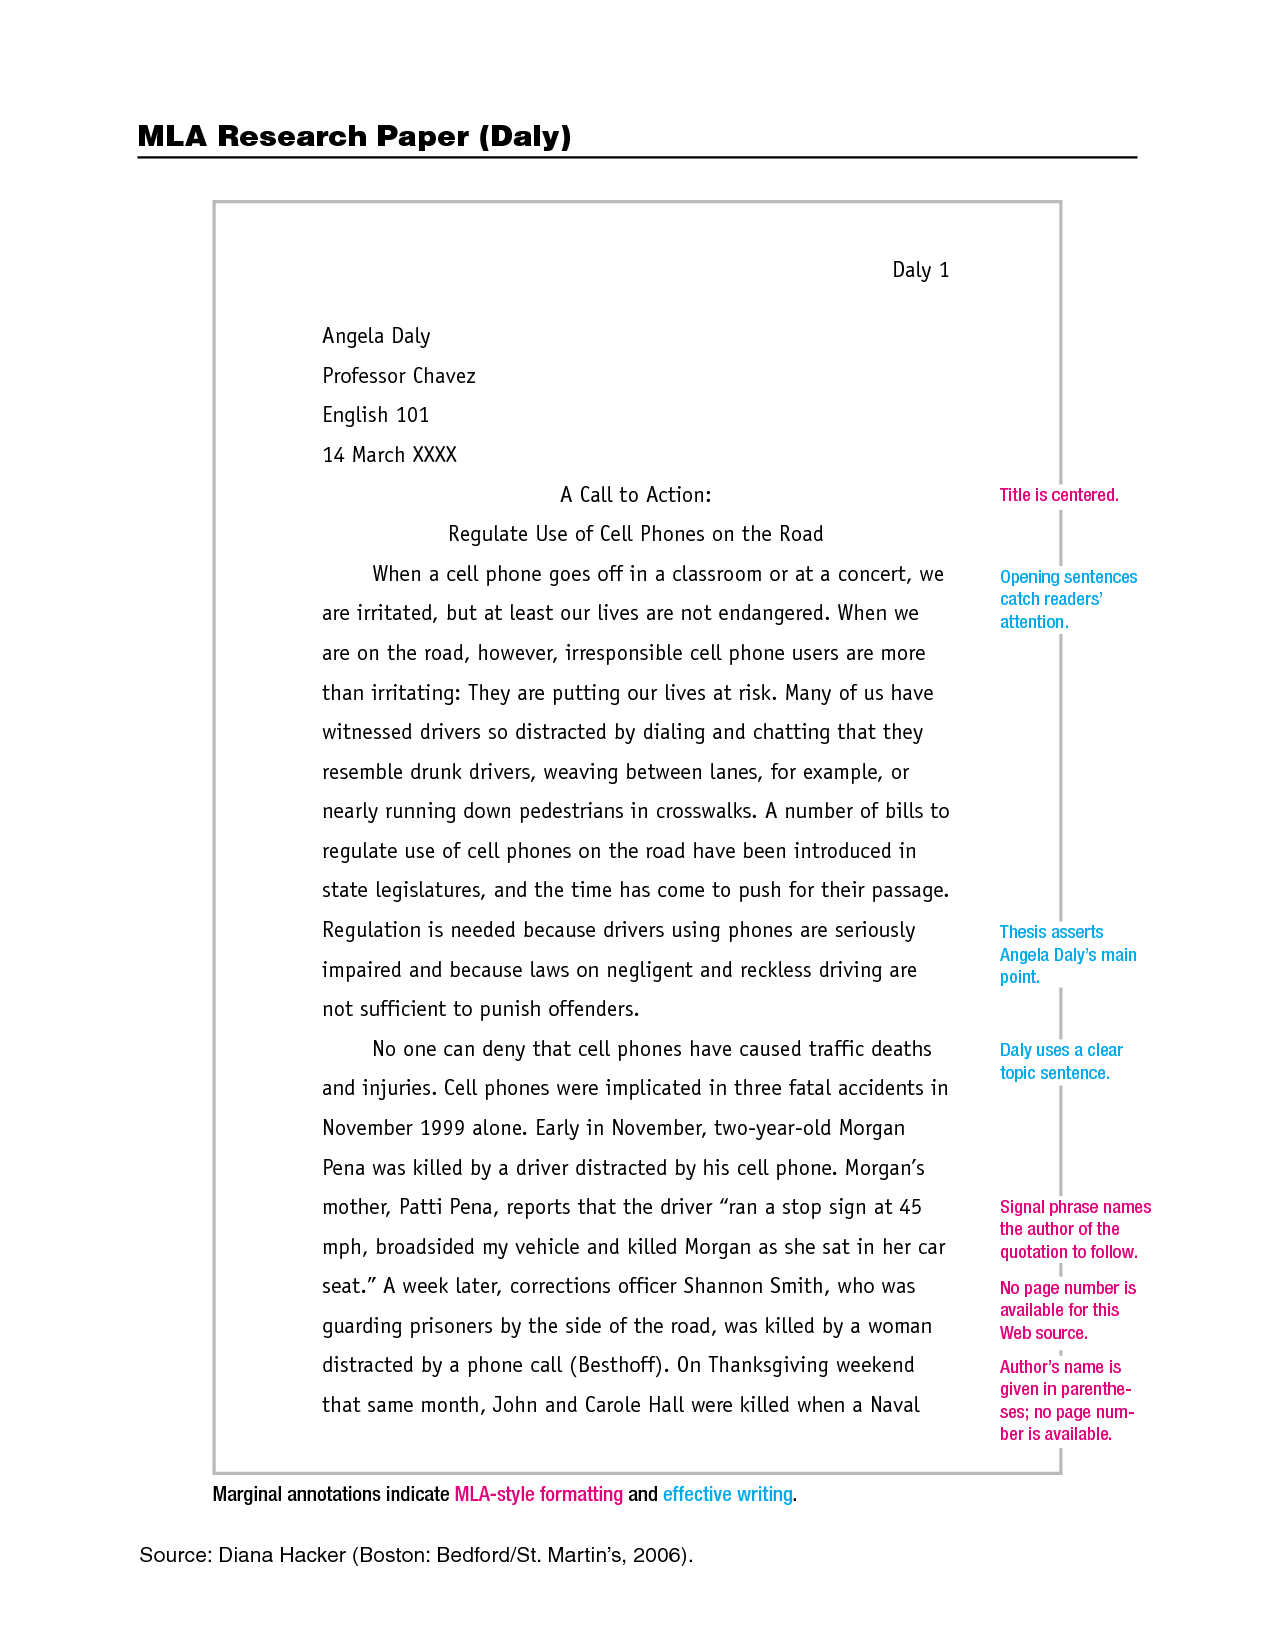 quote in mla essay Learn how to use direct quotations properly in the mla format, including how to punctuate them and what to do with longer quotes.